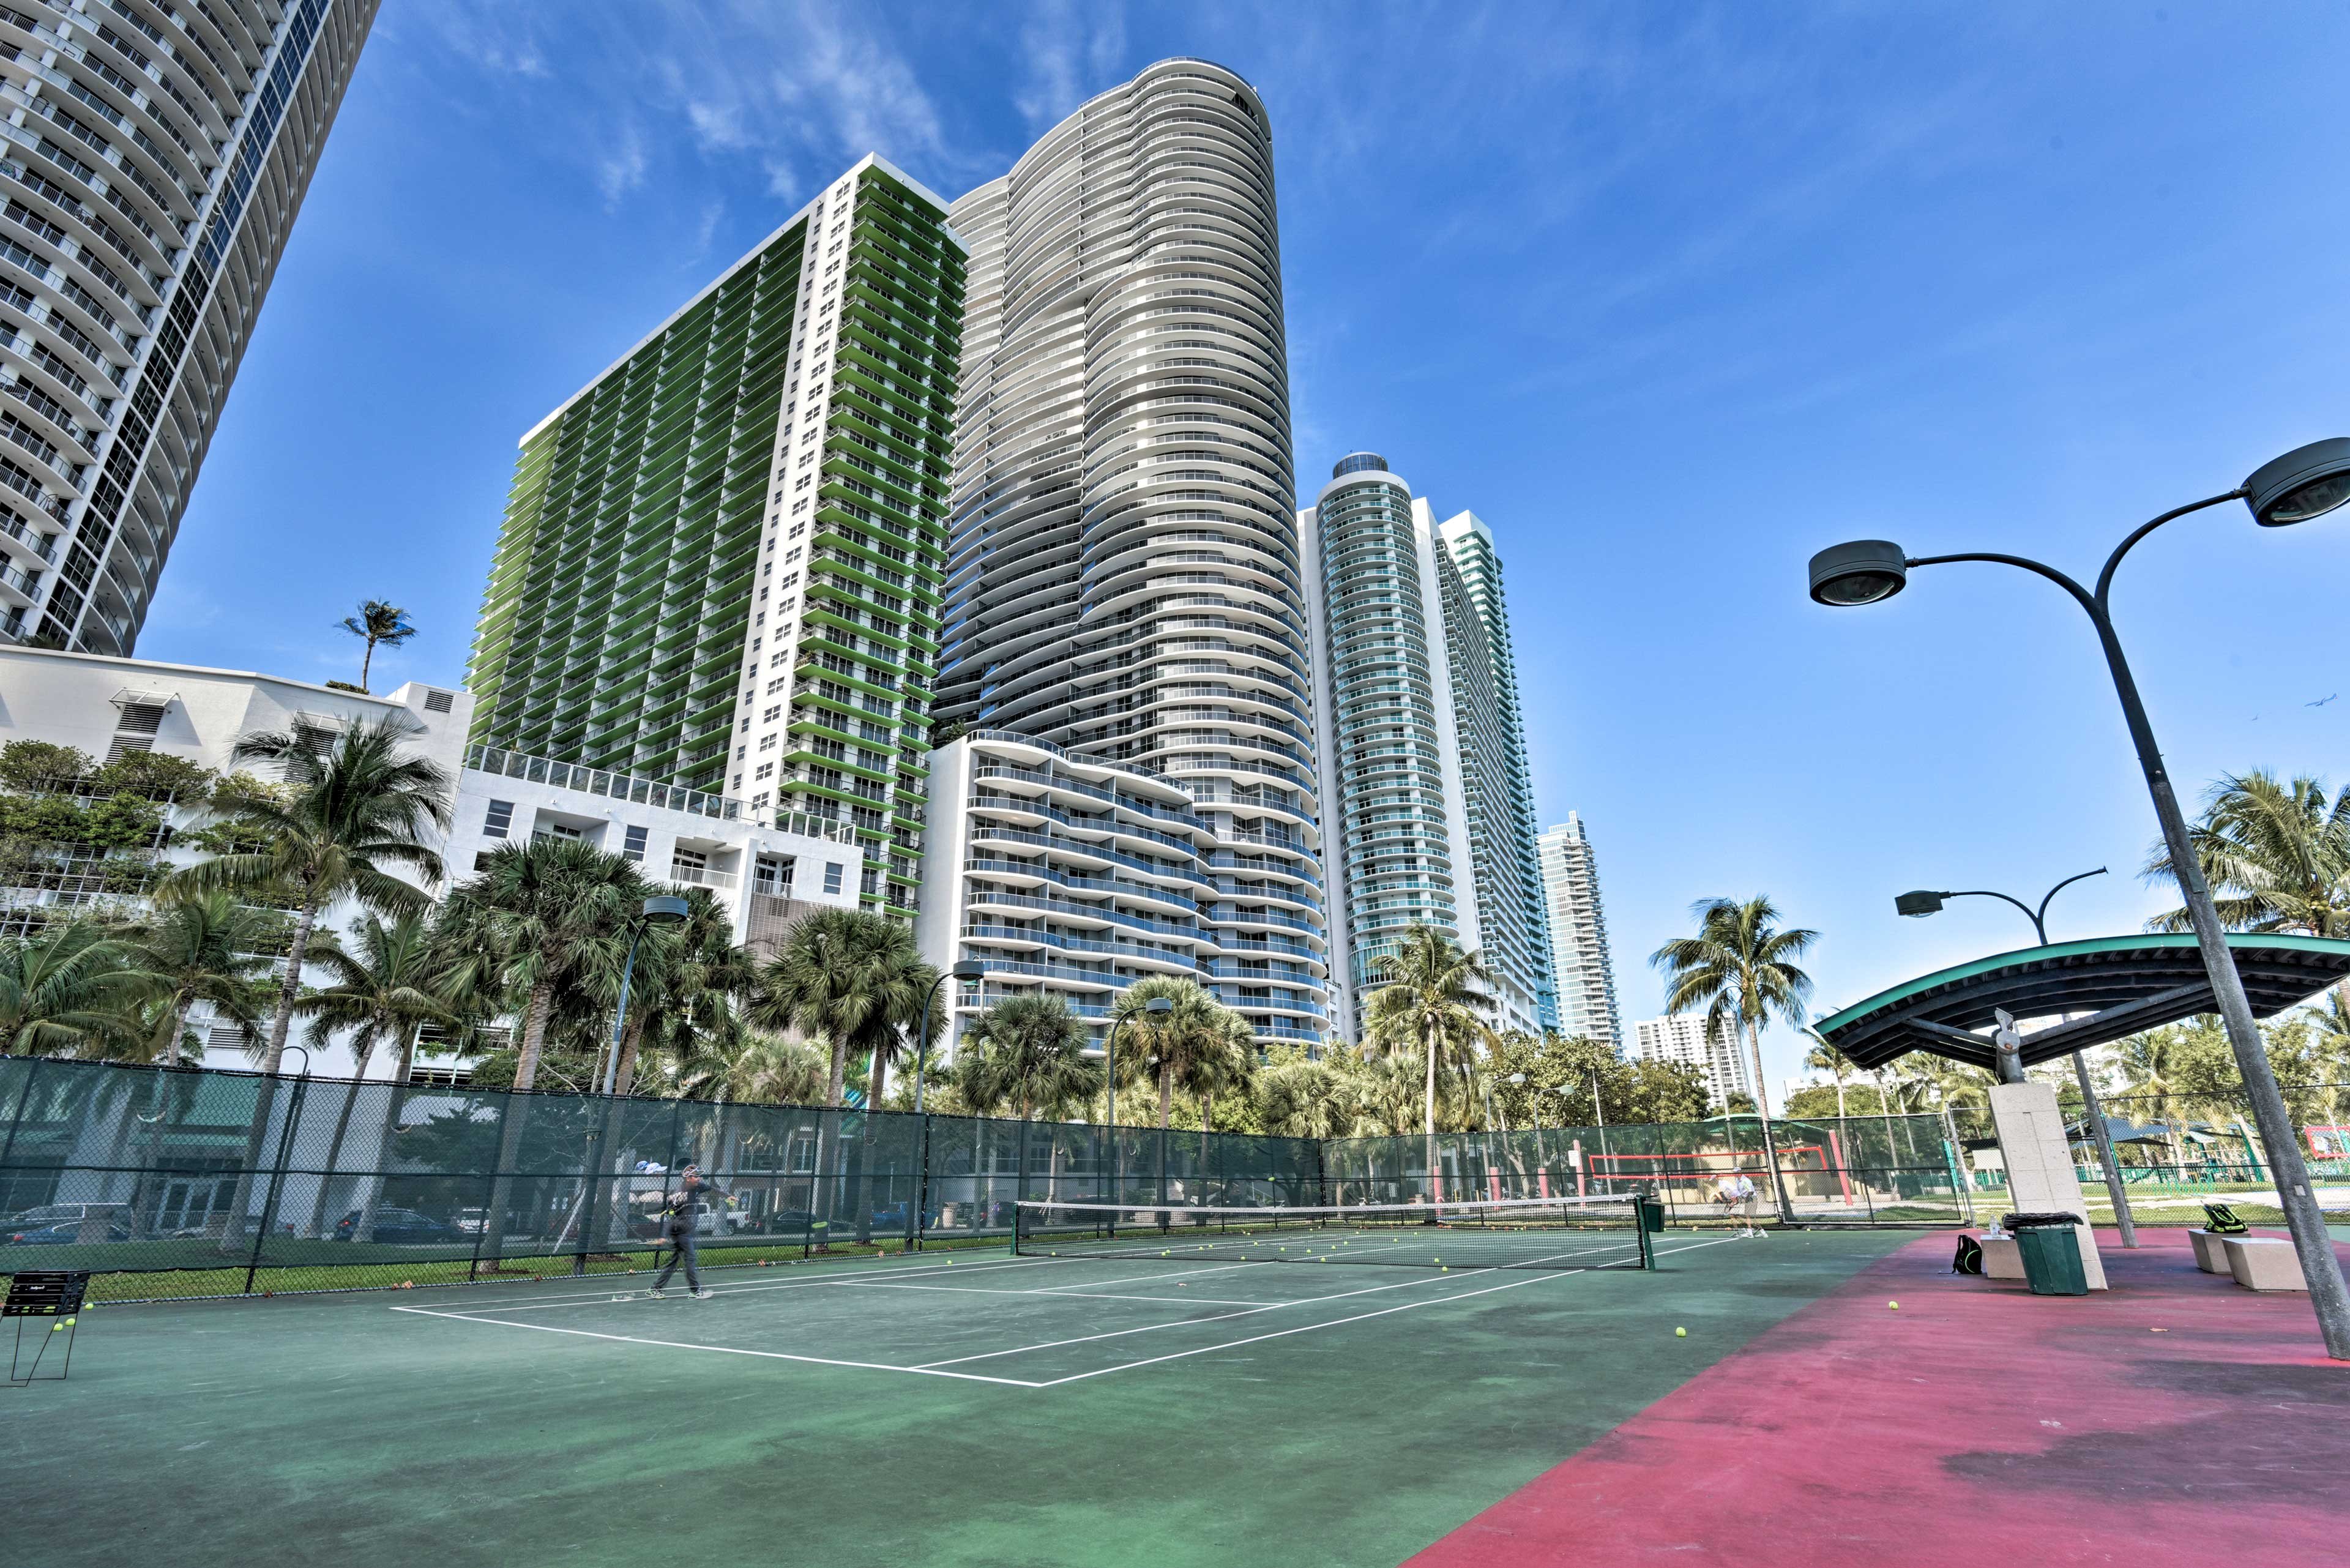 Start a game of tennis on the nearby public courts in Margaret Pace Park.